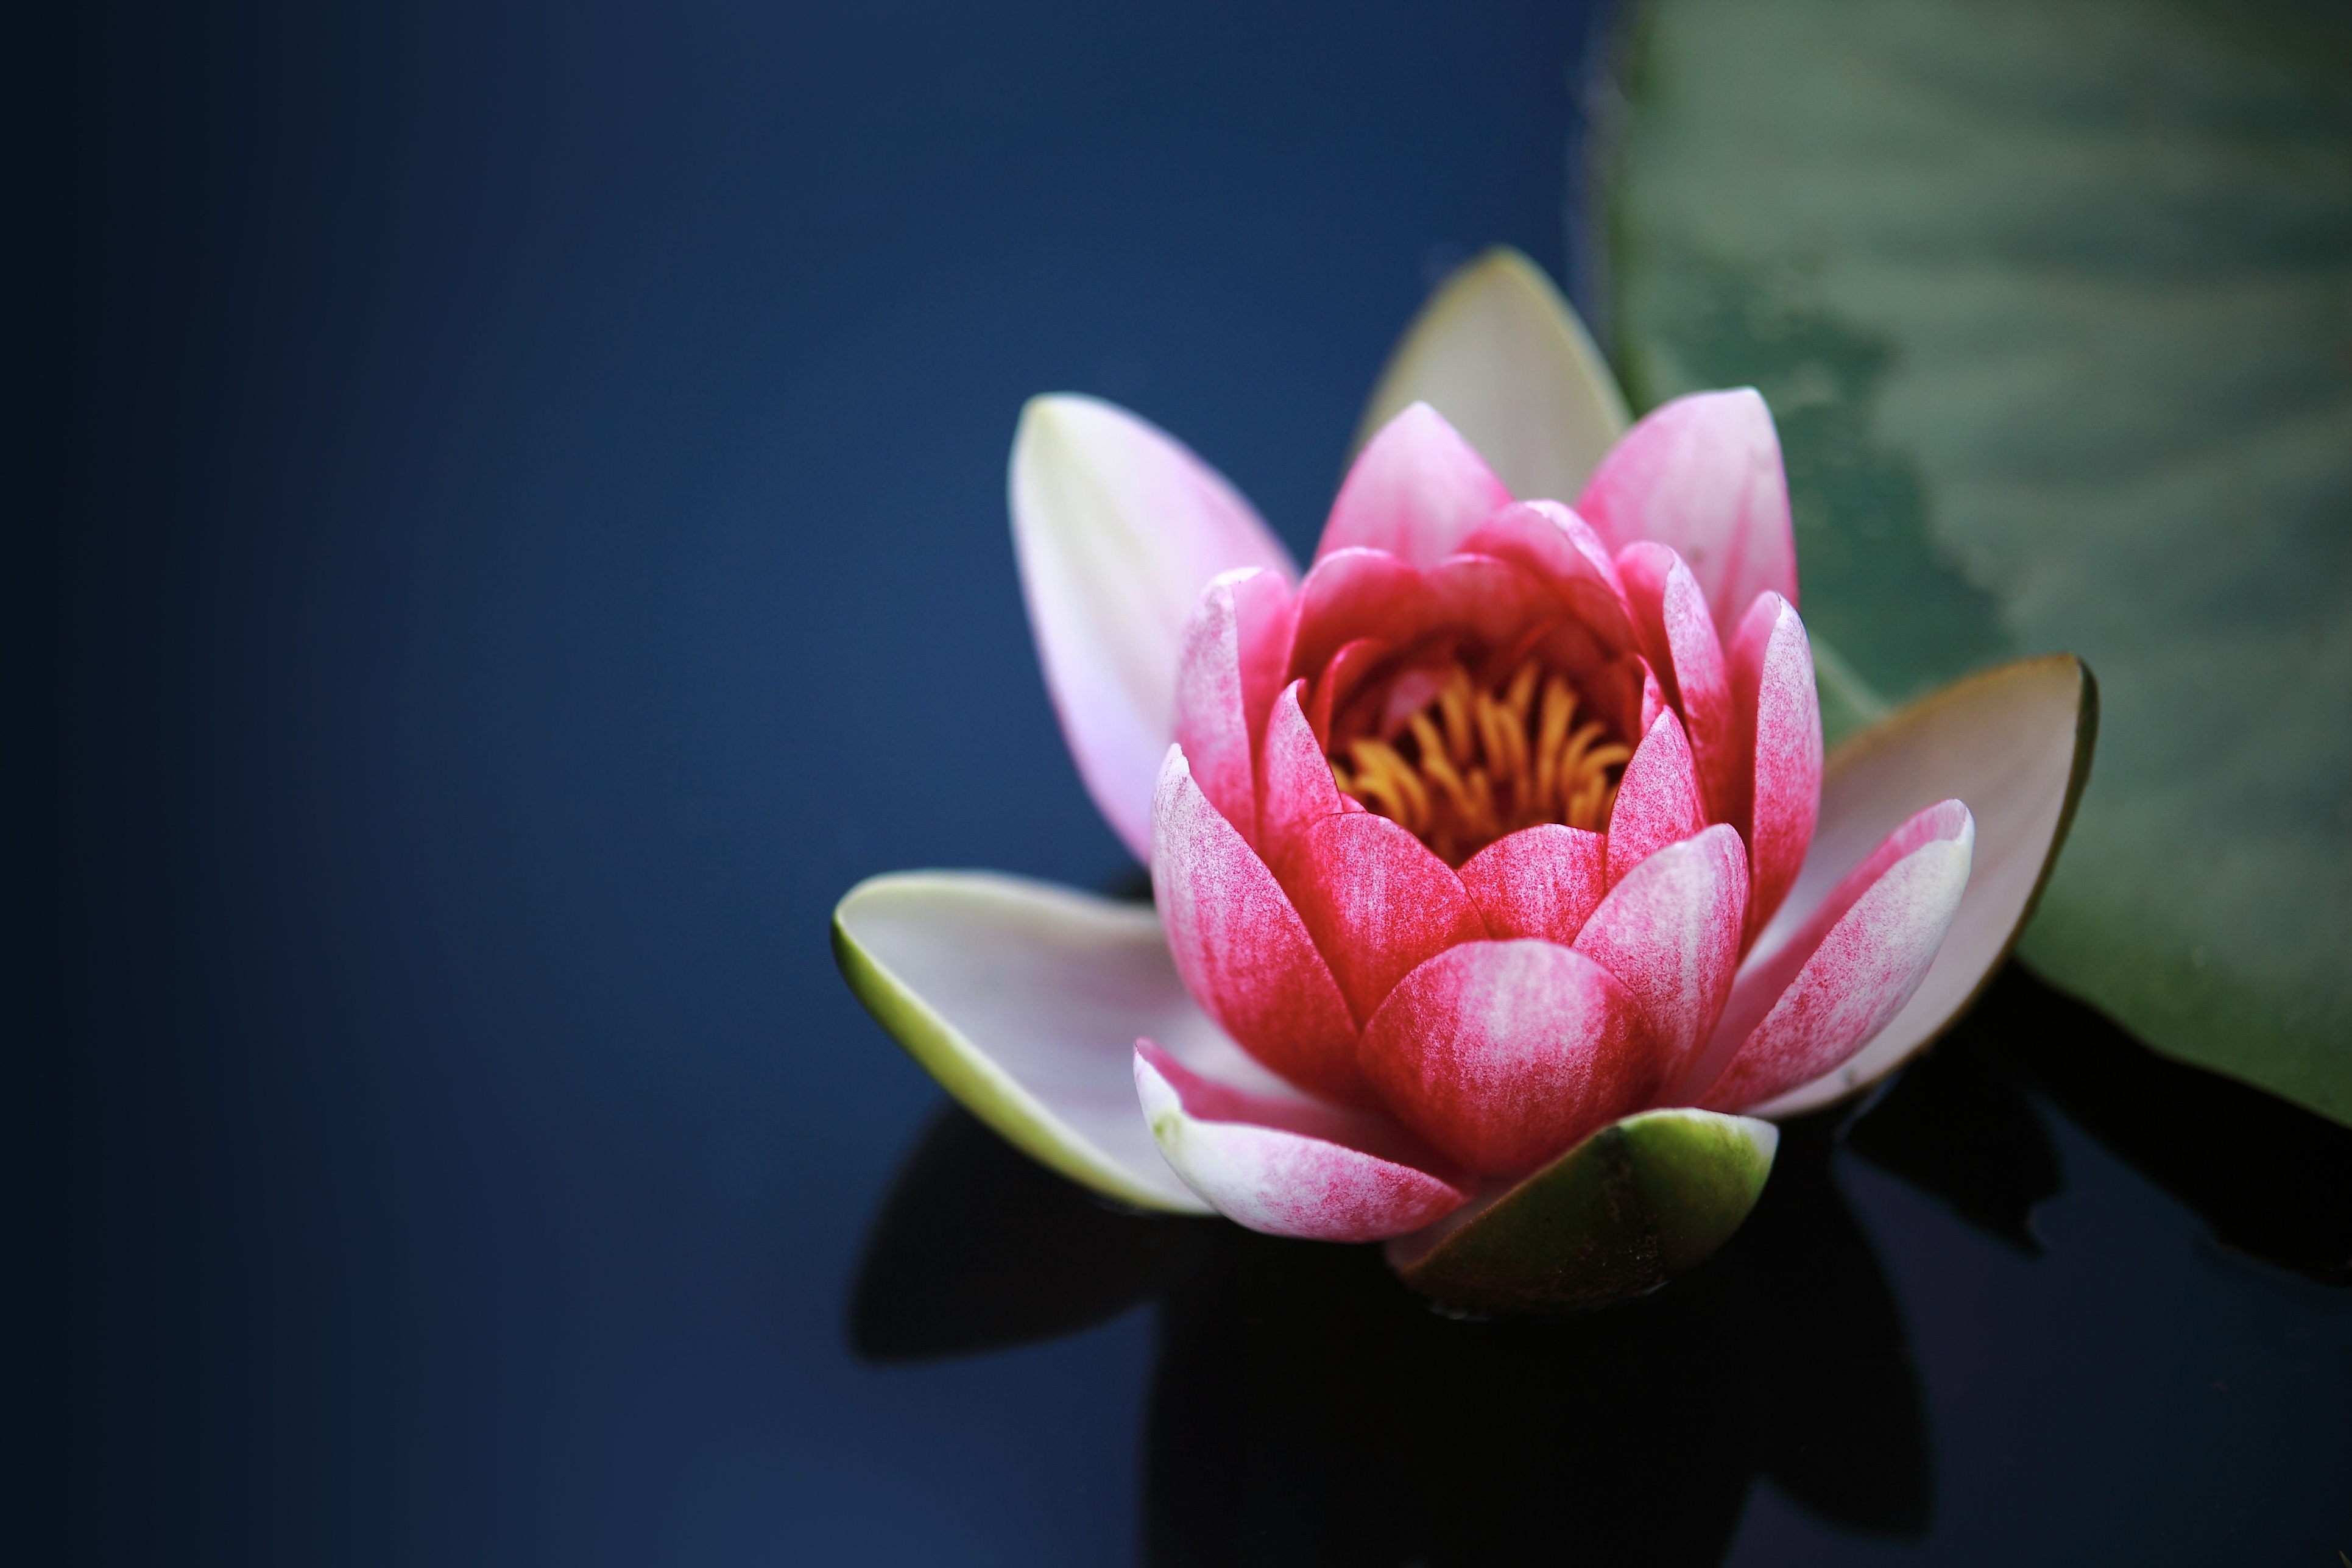 Water lily 56160